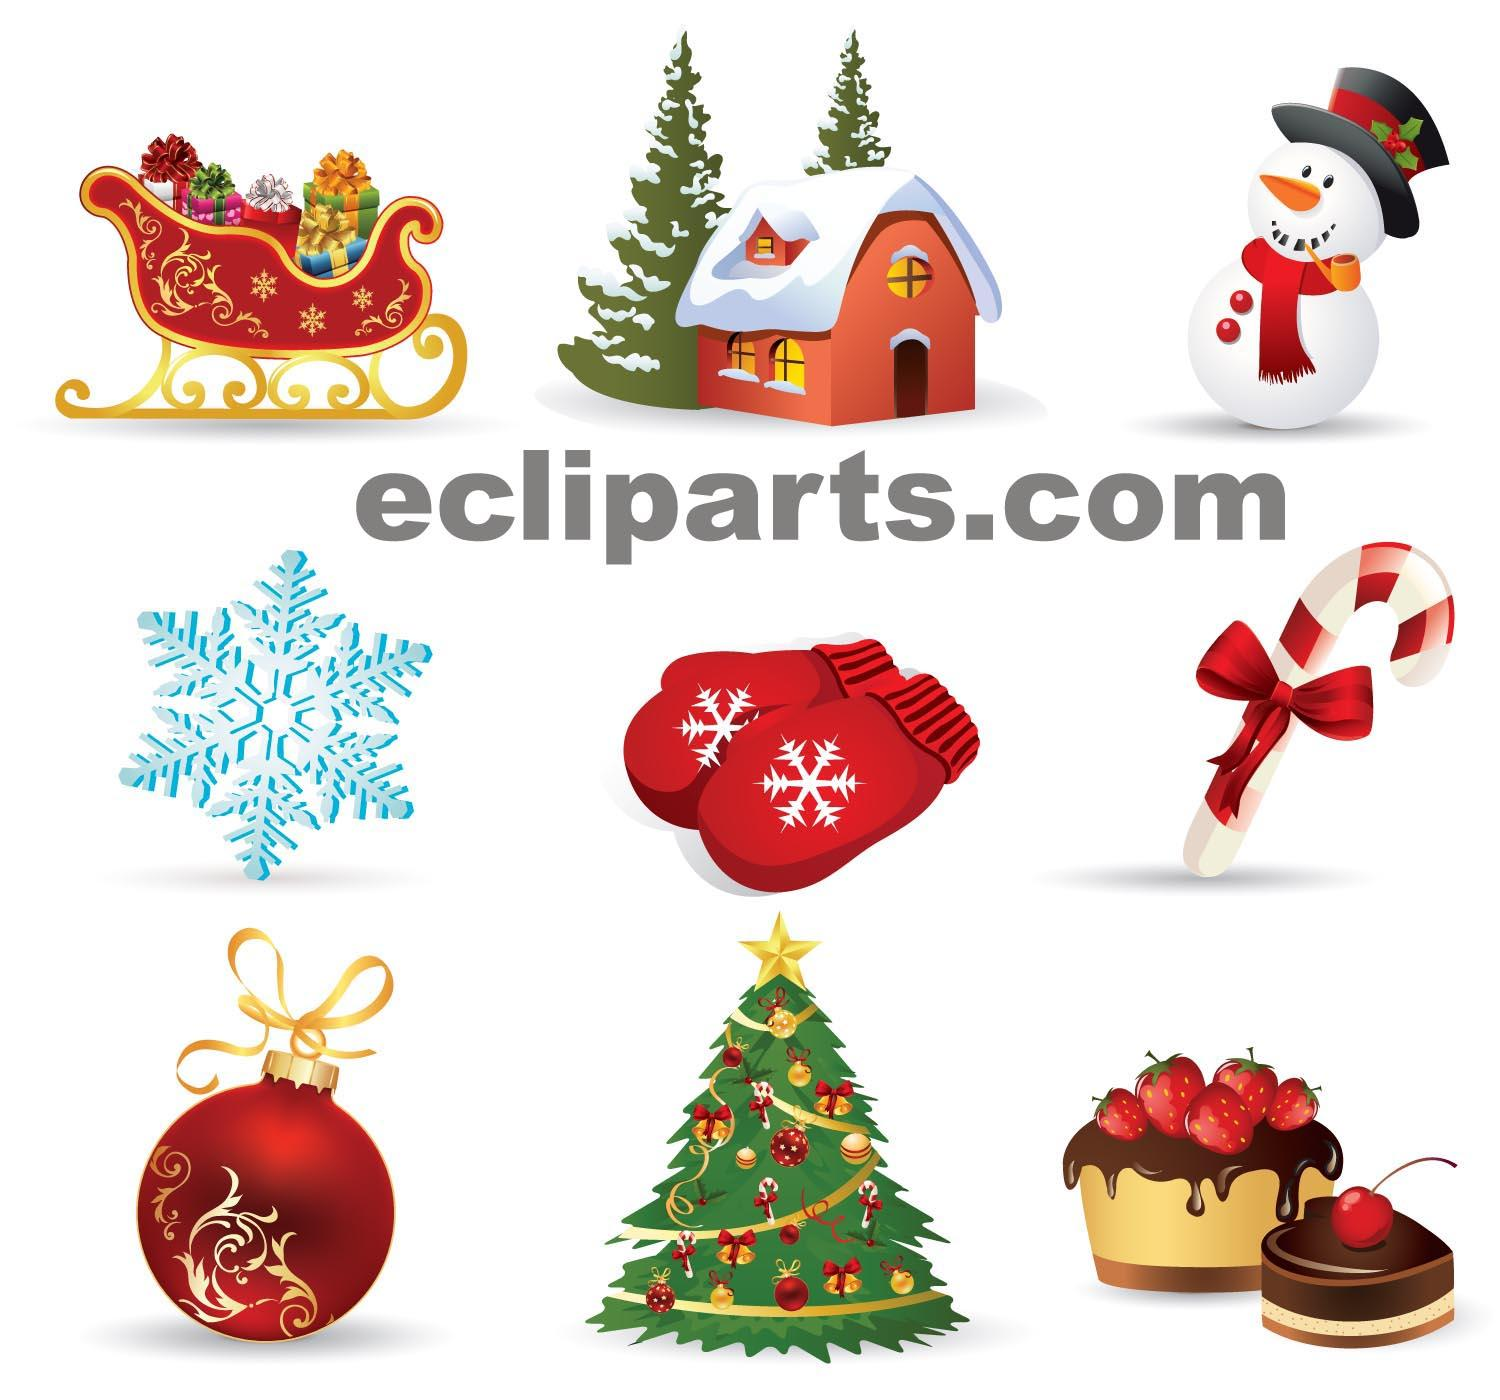 Free jpeg christmas clipart black and white stock Free images christmas clipart - ClipartFest black and white stock